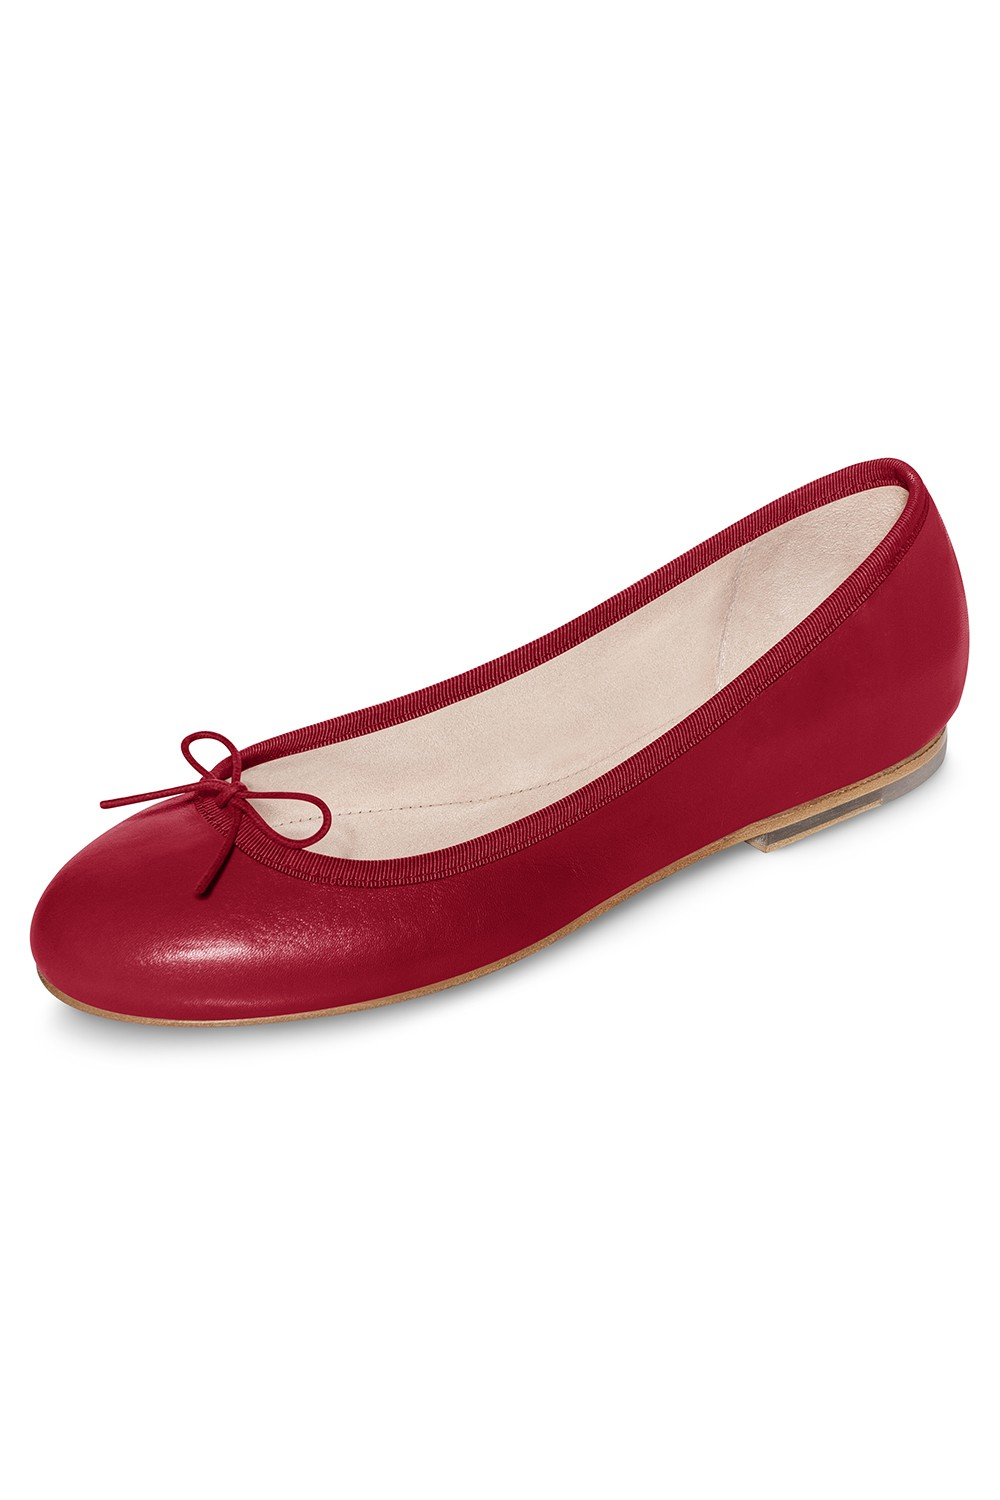 """FAB IN BALLET FLATS You don't have to be a prima ballerina to dance your way through the day in ballet flats! ModCloth has a stylish selection of women's ballet flats, from cute and colorful to sparkly and soiree-ready."